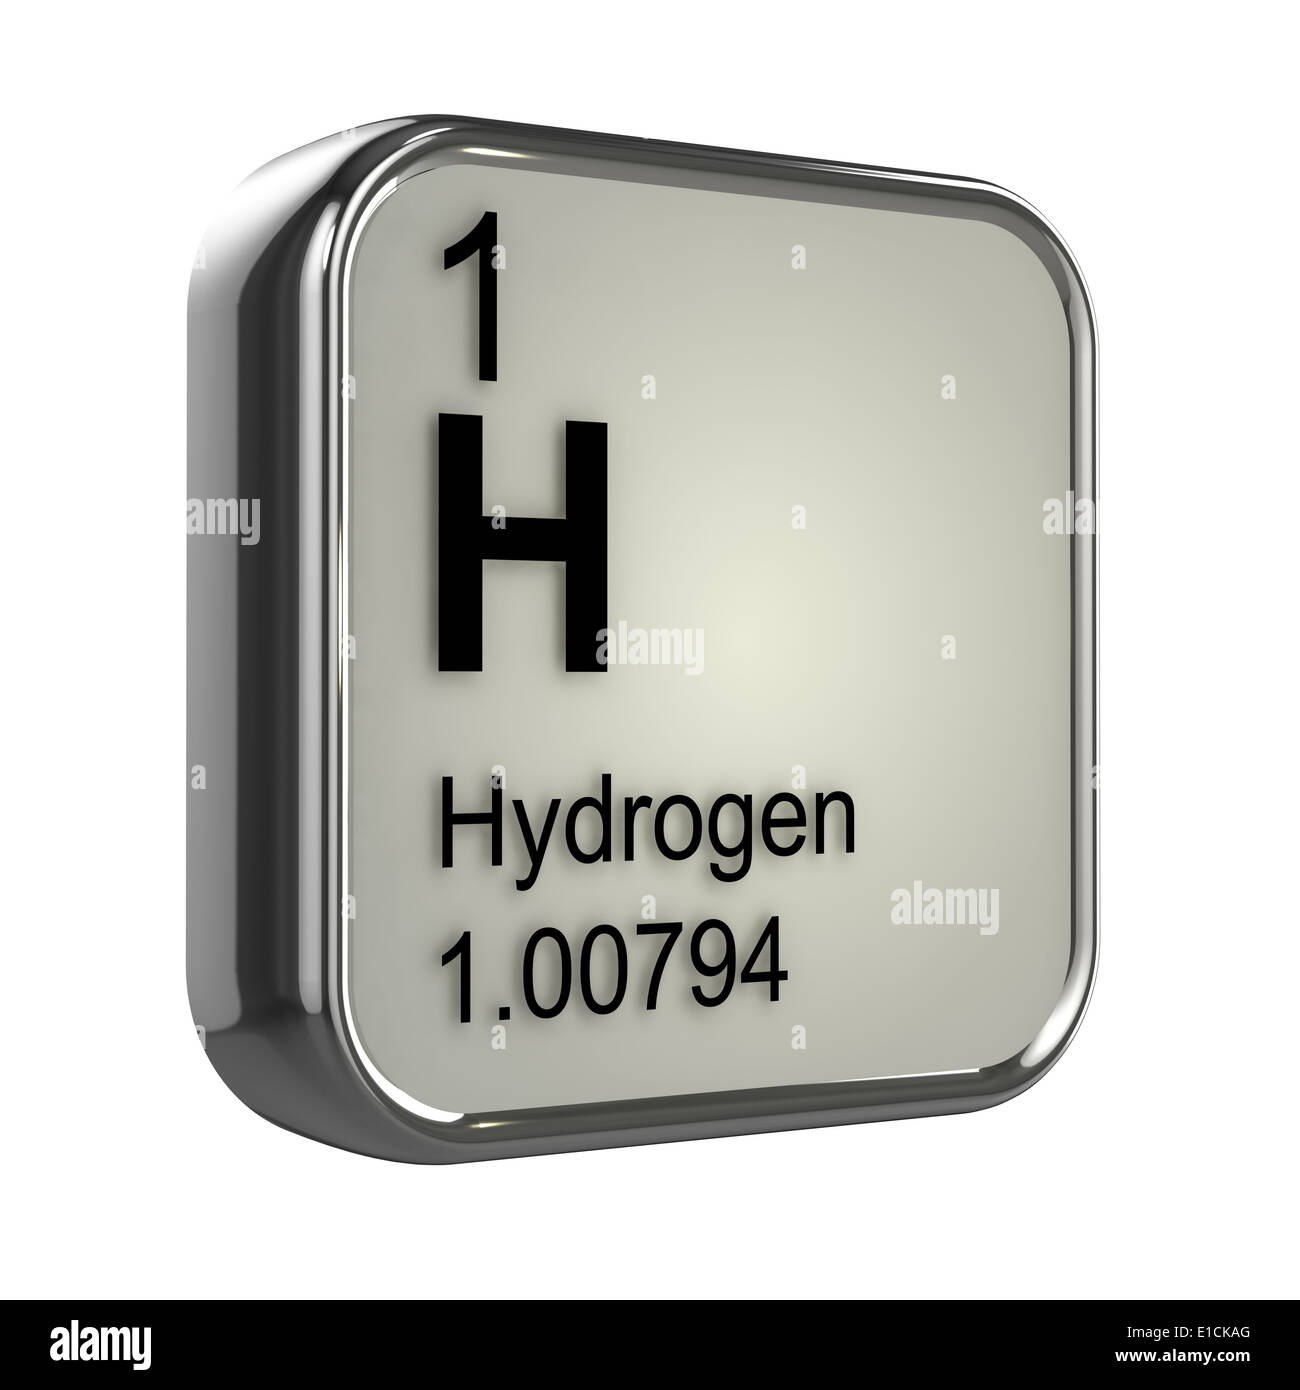 3d periodic table design for hydrogen element stock photo 69734744 3d periodic table design for hydrogen element urtaz Choice Image